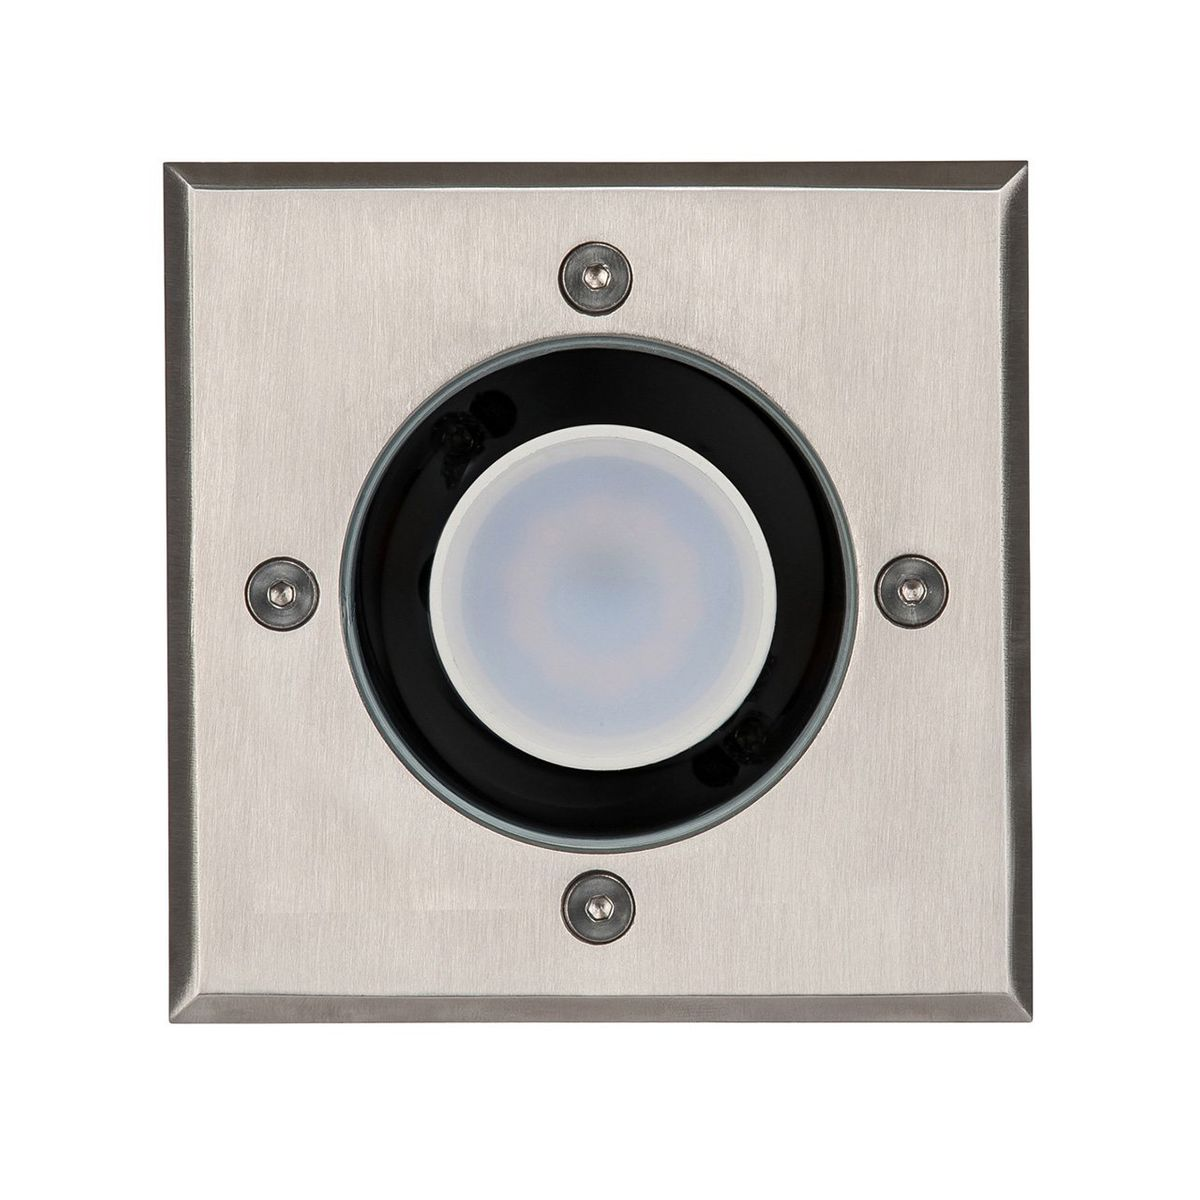 HV1701 - HV1706 - METRO Square 316 Stainless Steel Inground Light – Bild 1